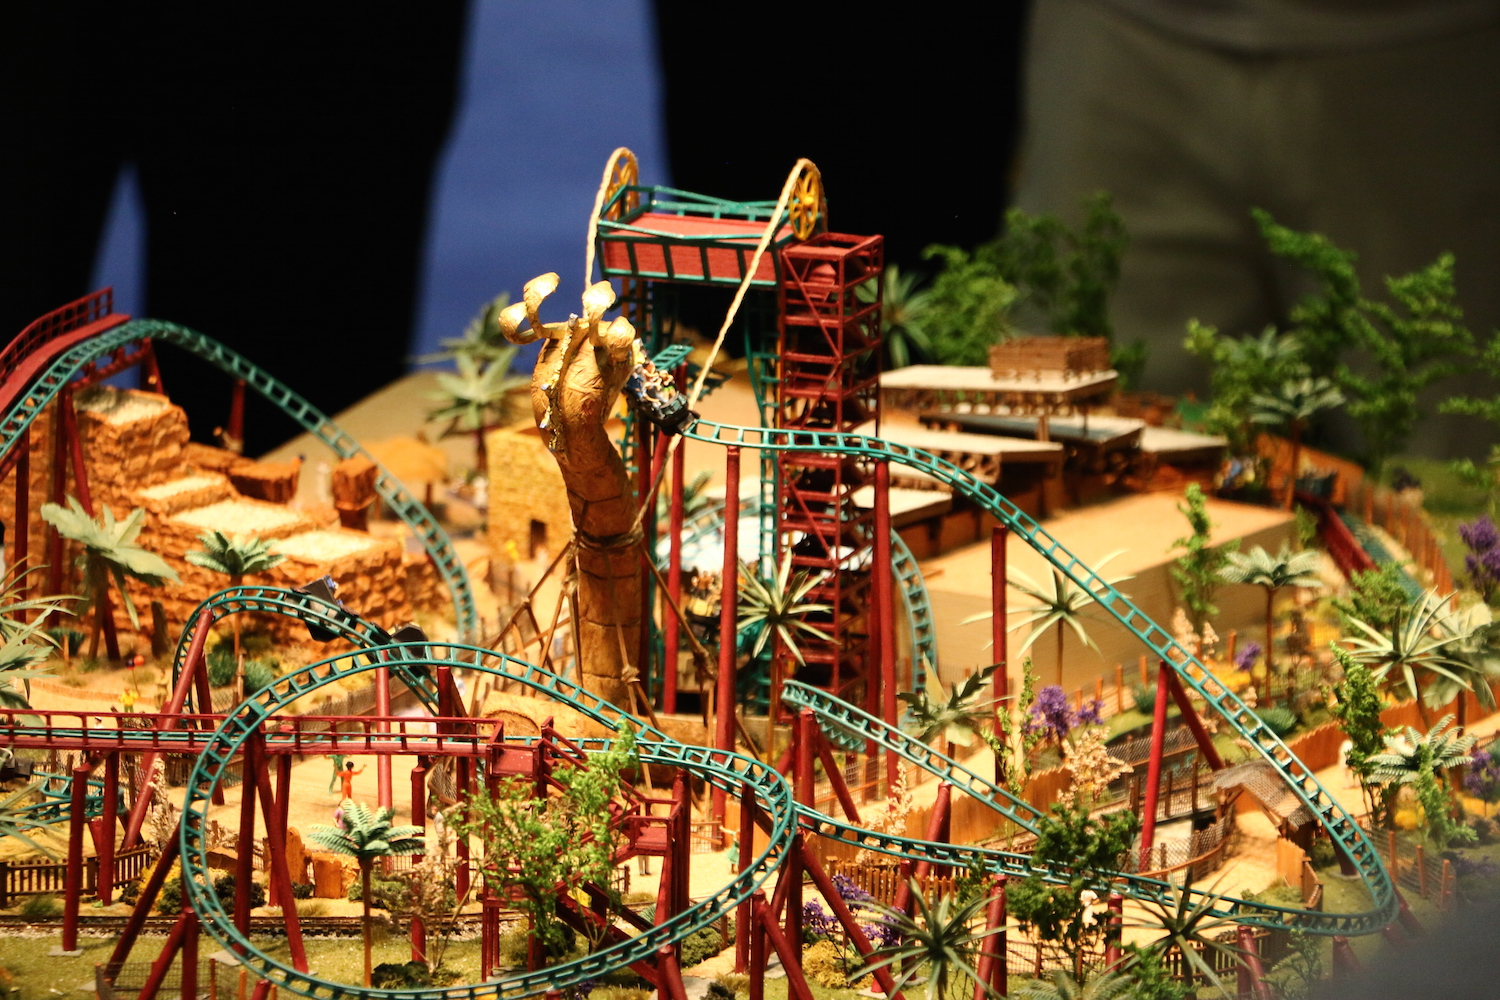 Iaapa 2015 in photos massive amusement park convention - Busch gardens tampa bay cobra s curse ...